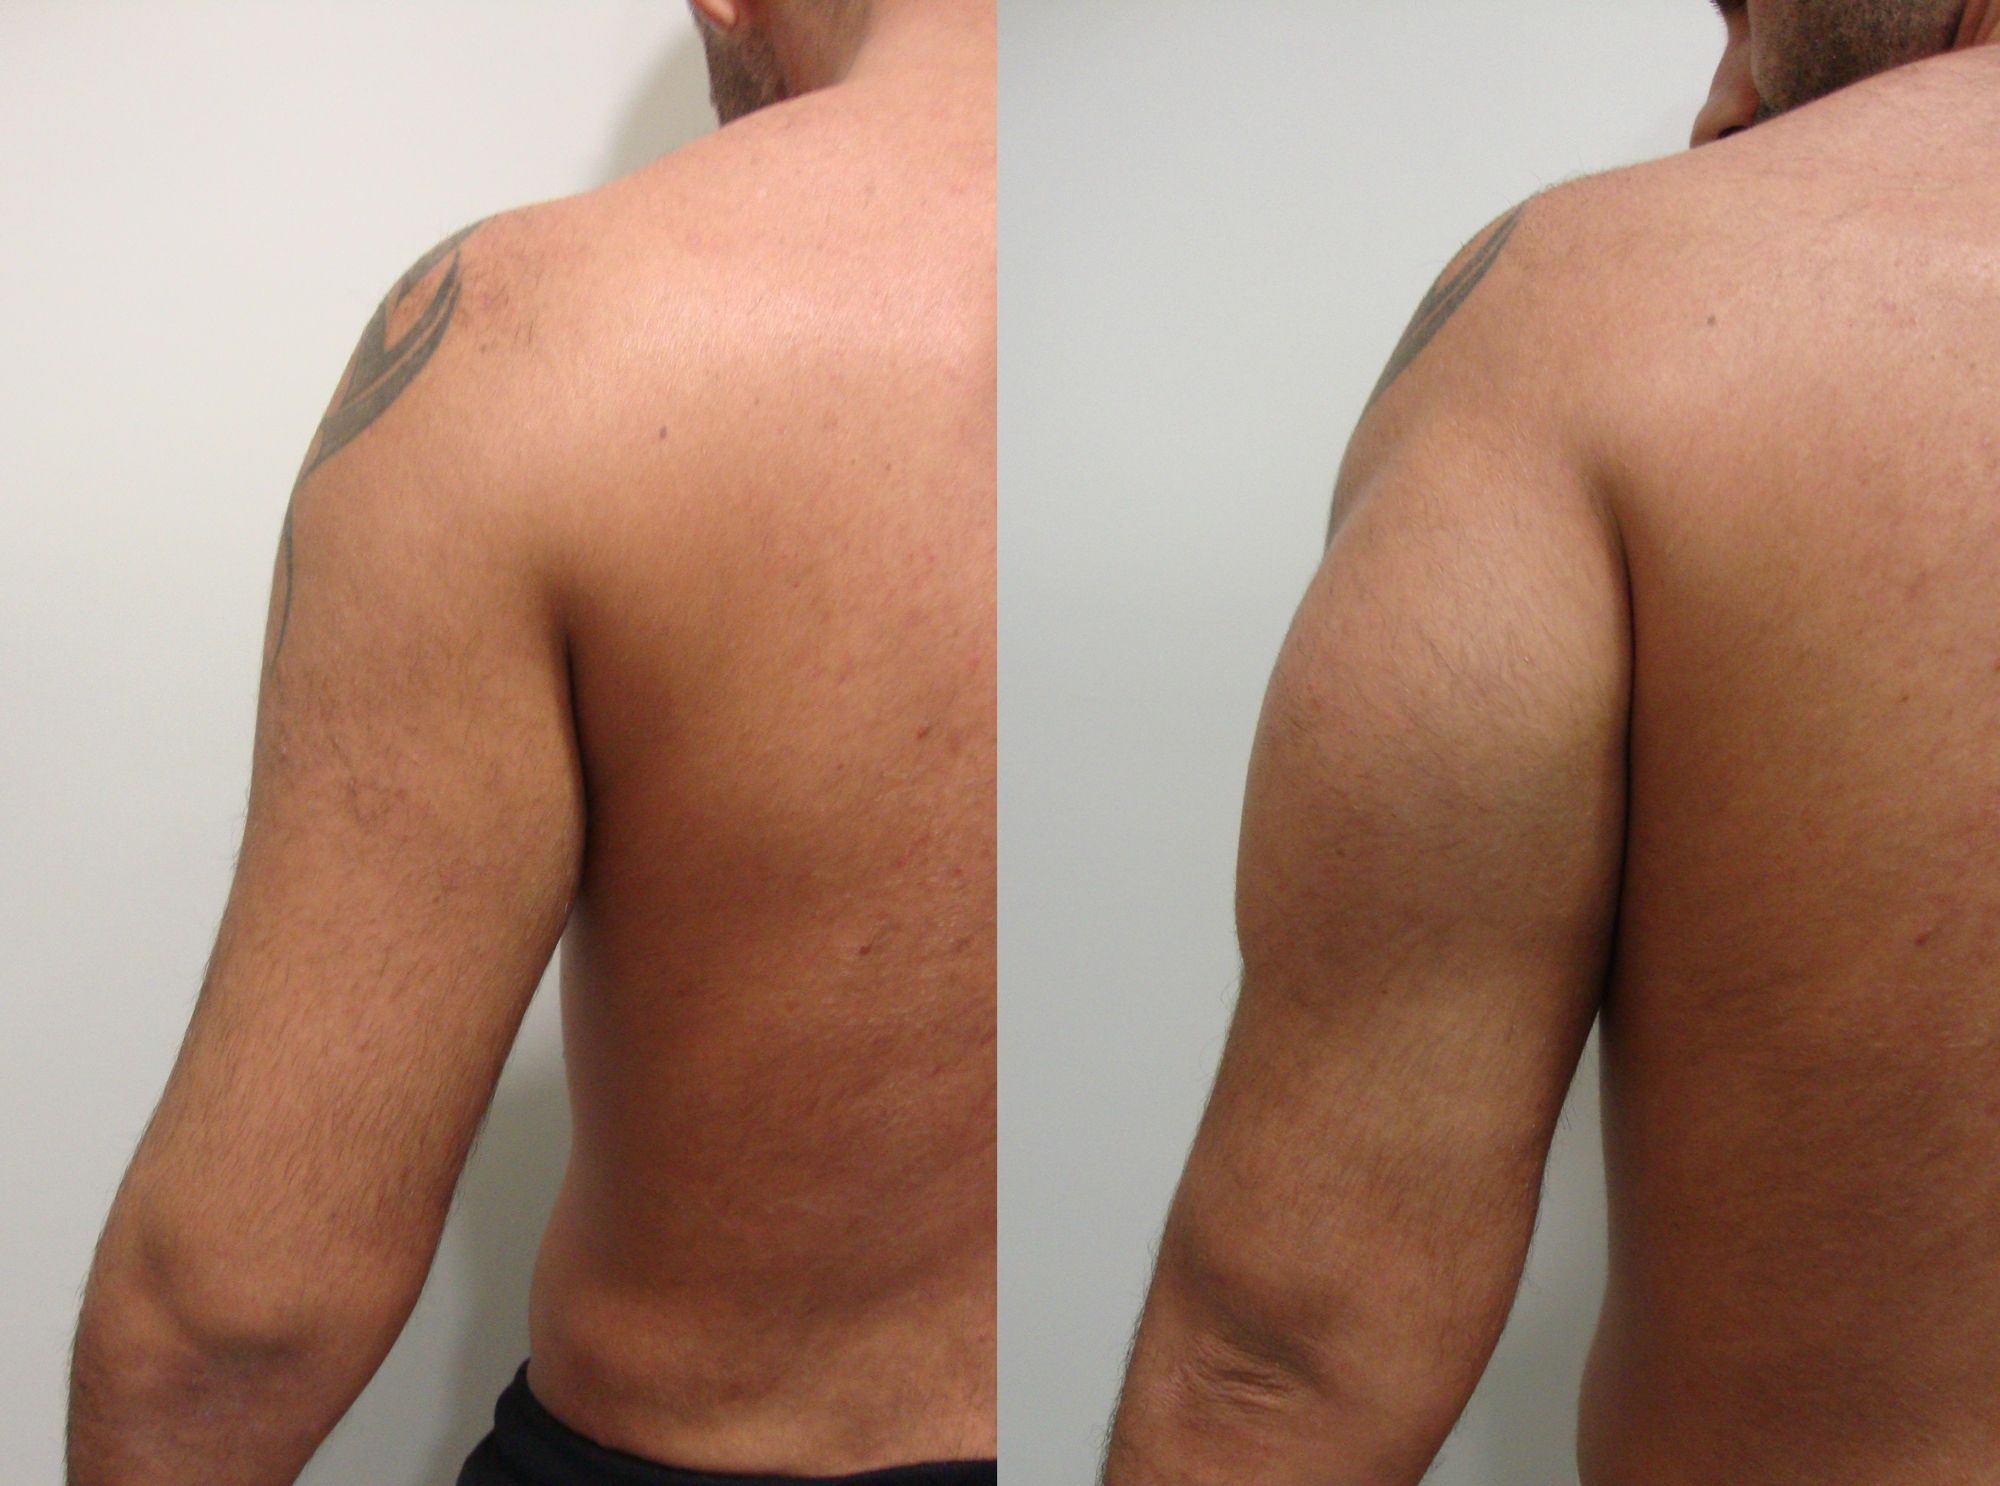 Triceps implants - Picture 1